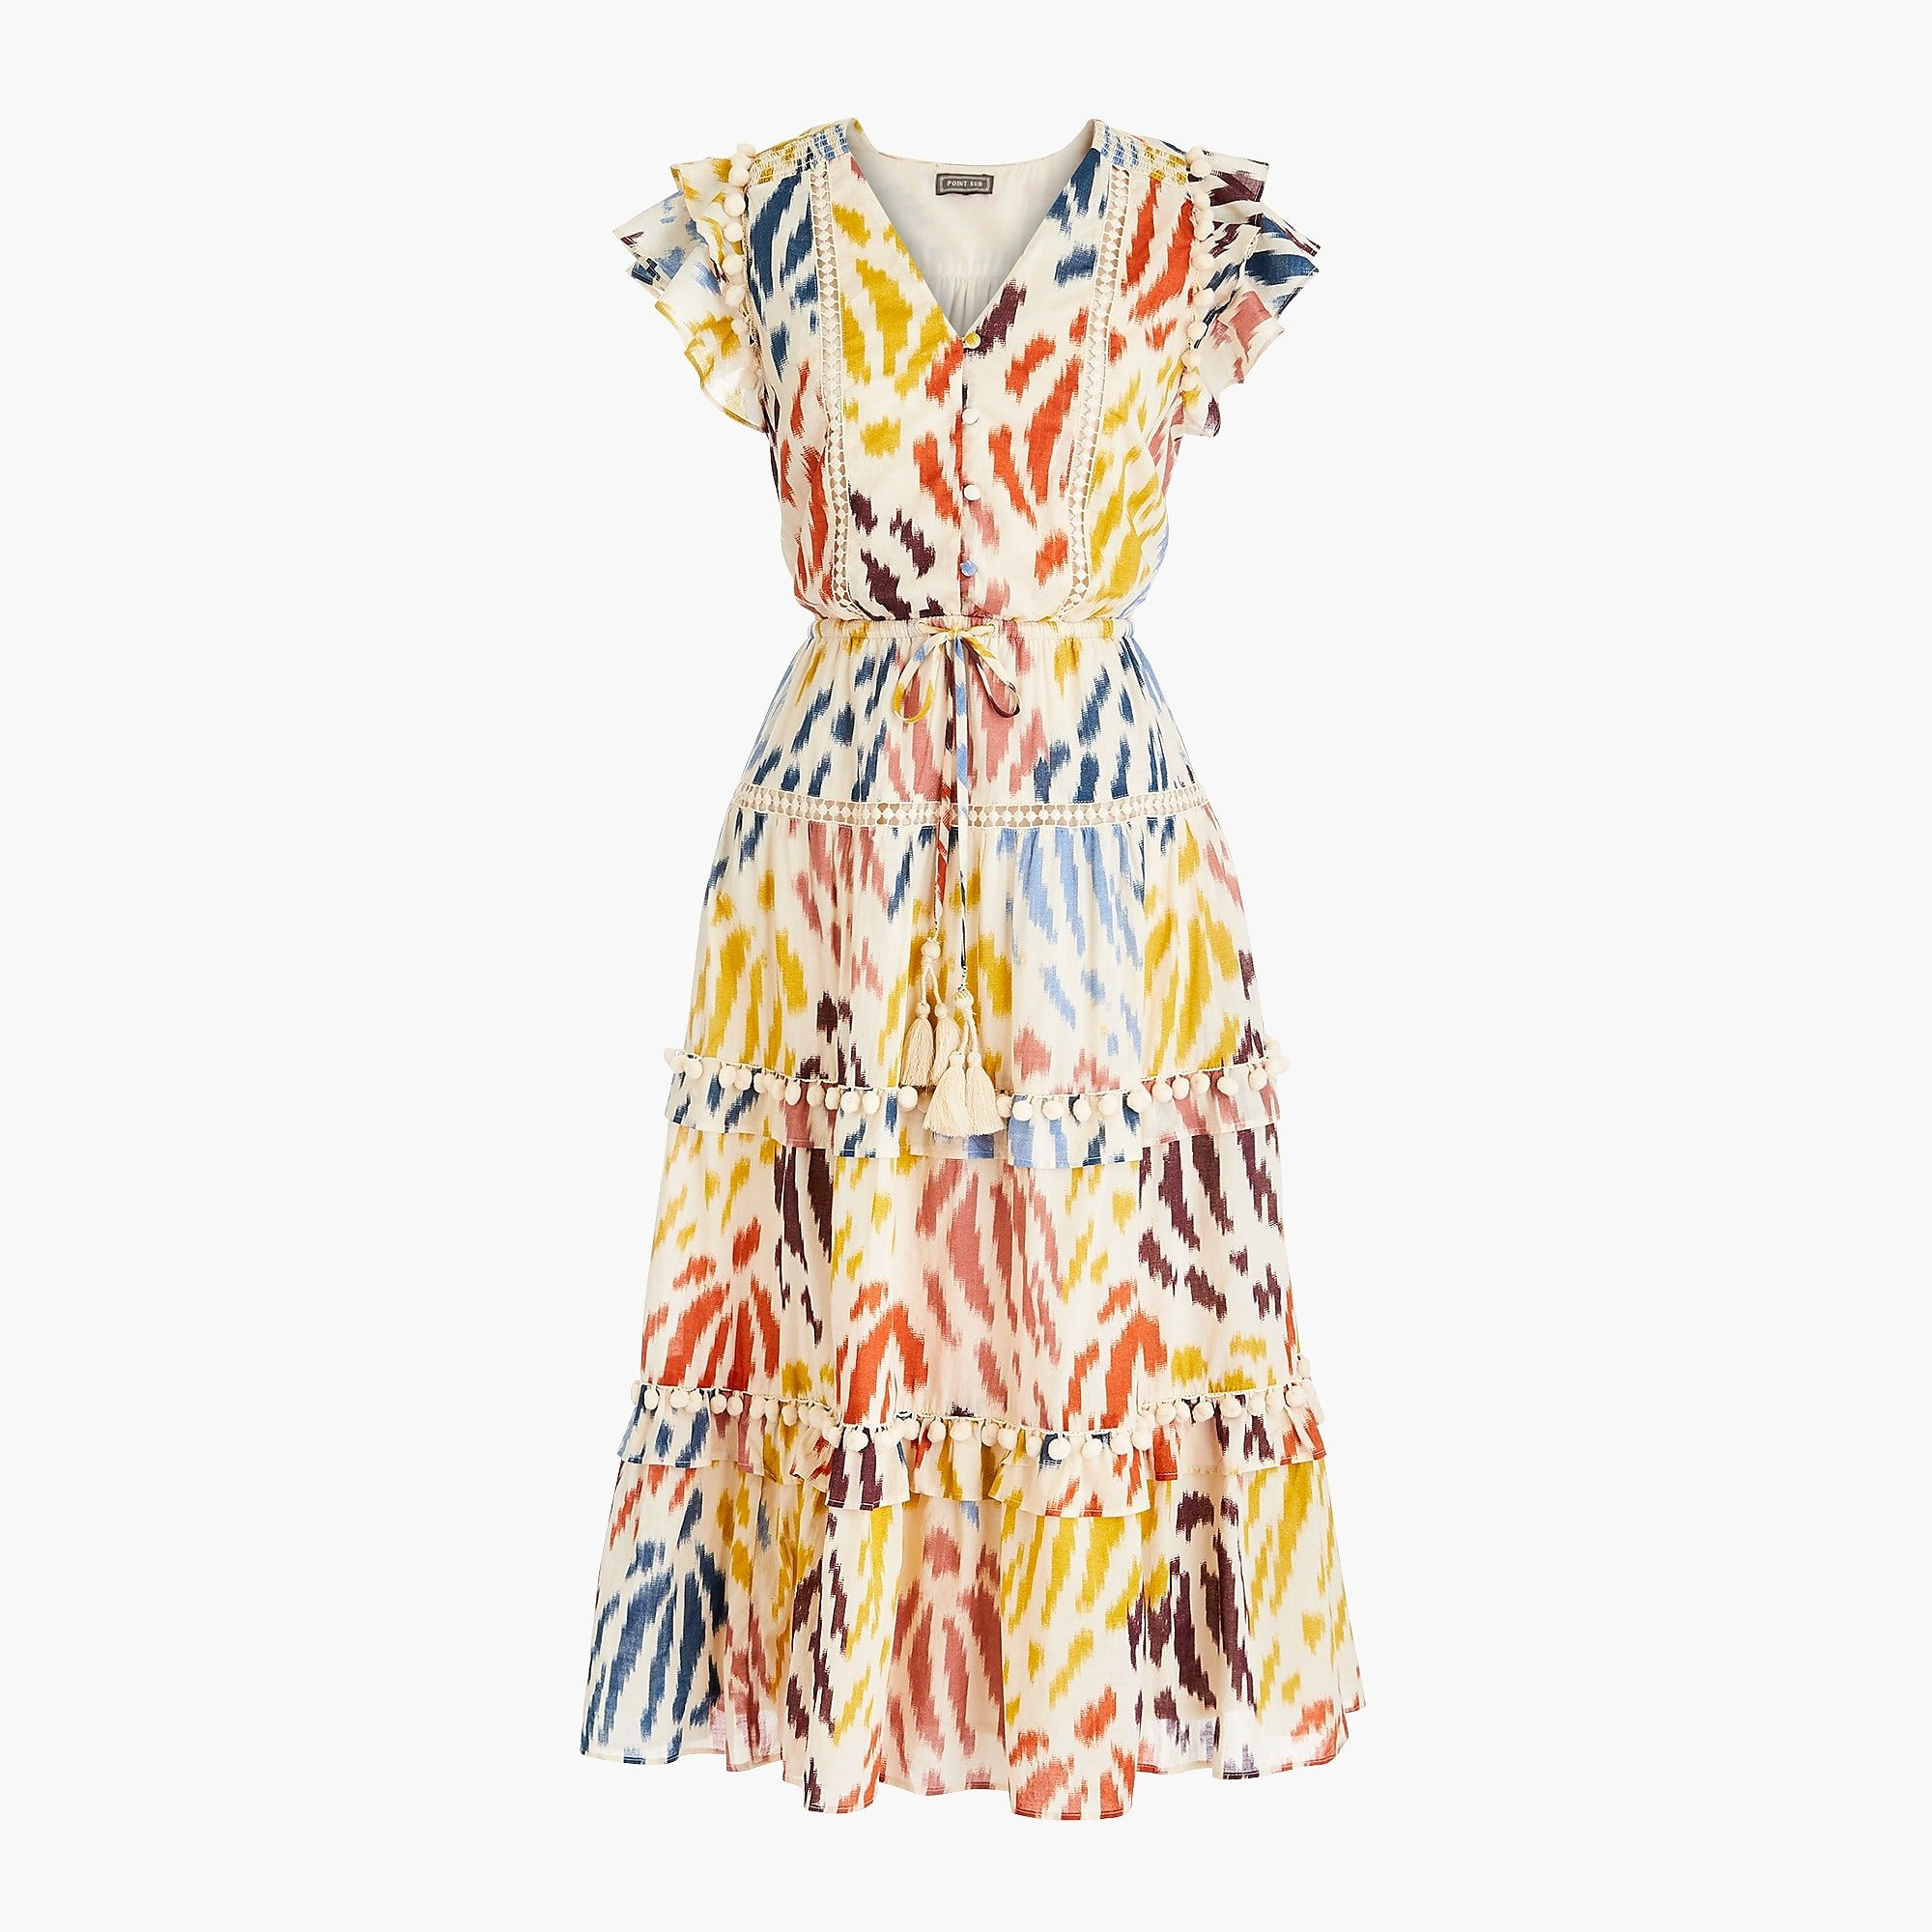 f72ea38719 Shop the Point Sur flutter-sleeve midi dress in printed cotton voile at J. Crew and see the entire selection of Women s Dresses.